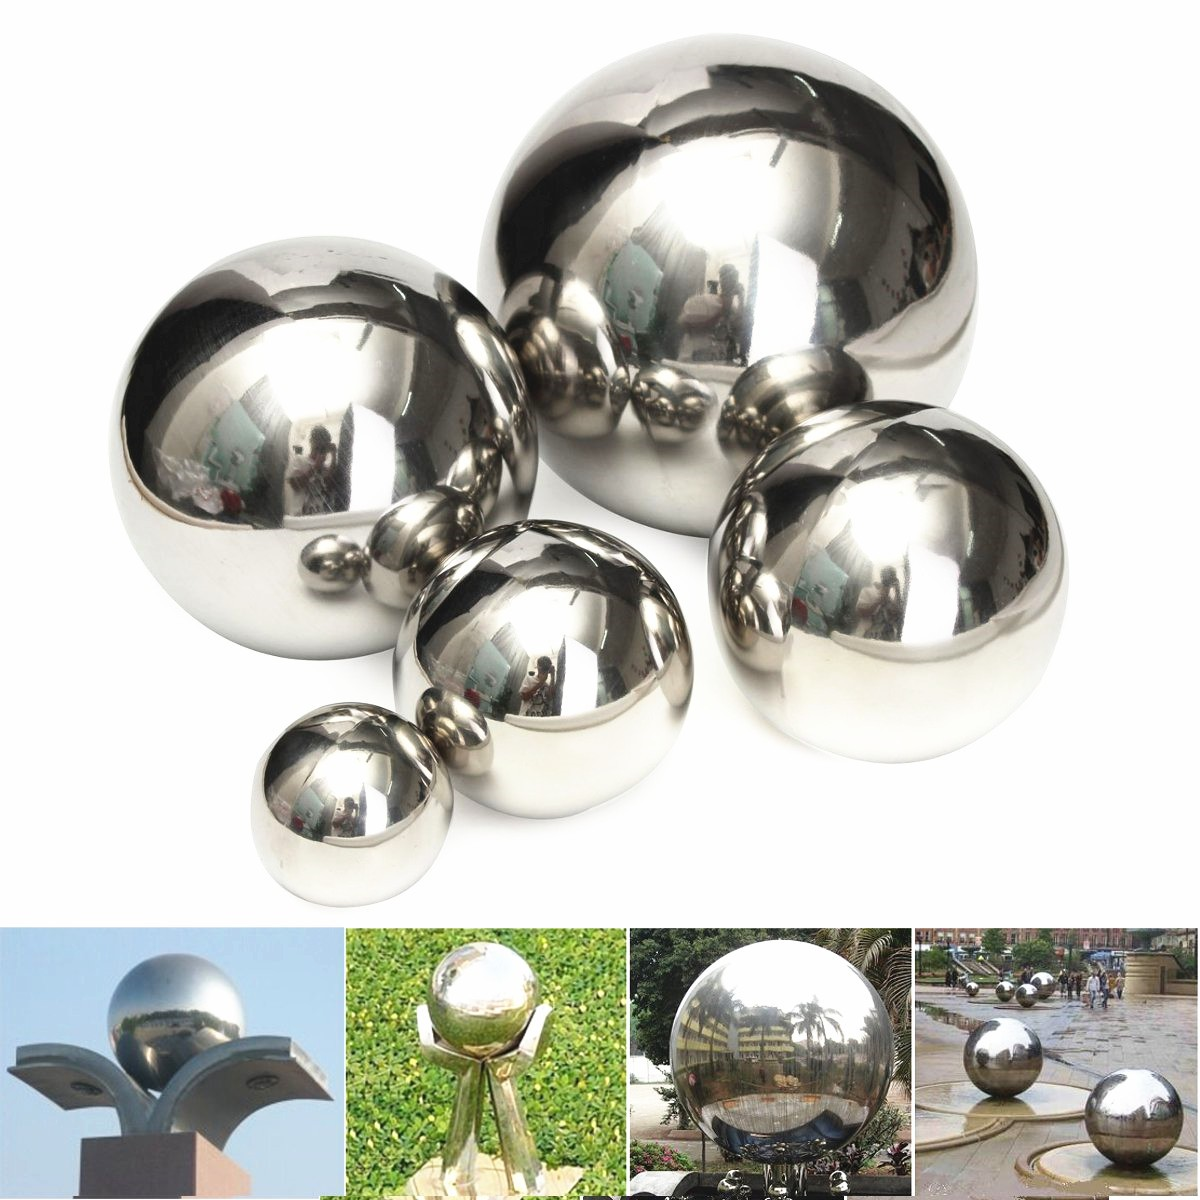 Stainless Steel Mirror Ball Polished Hollow Ball Hardware Accessories 5/8/10/12/15cm new safurance 200w 12v loud speaker car horn siren warning alarm stainless steel home security safety